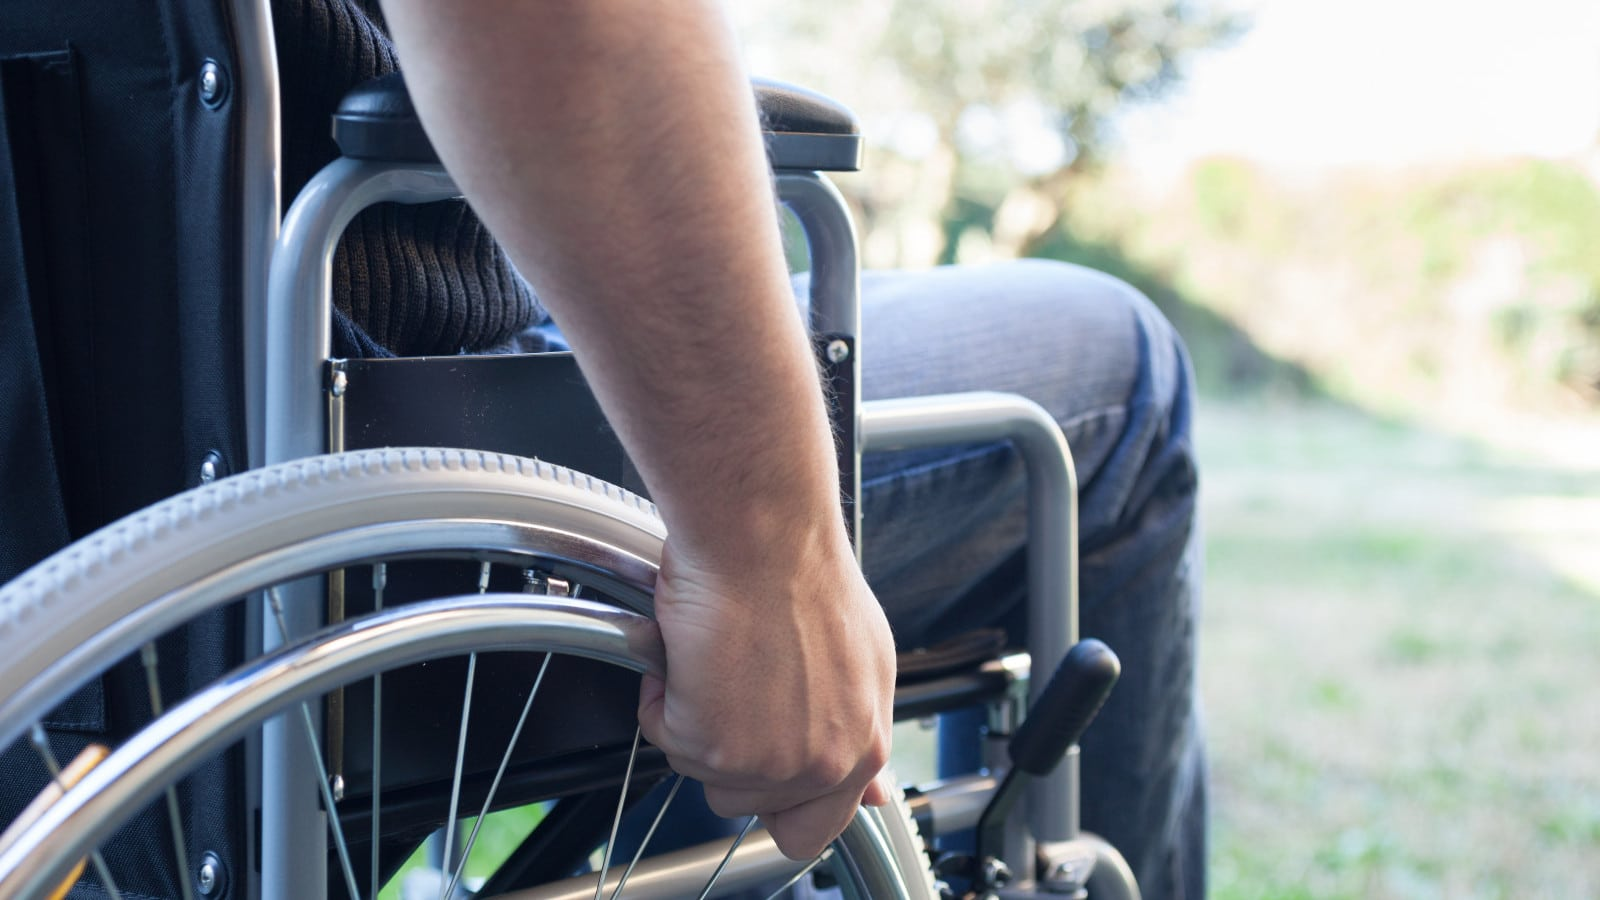 Paralyzed Man In a Wheelchair Stock Photo